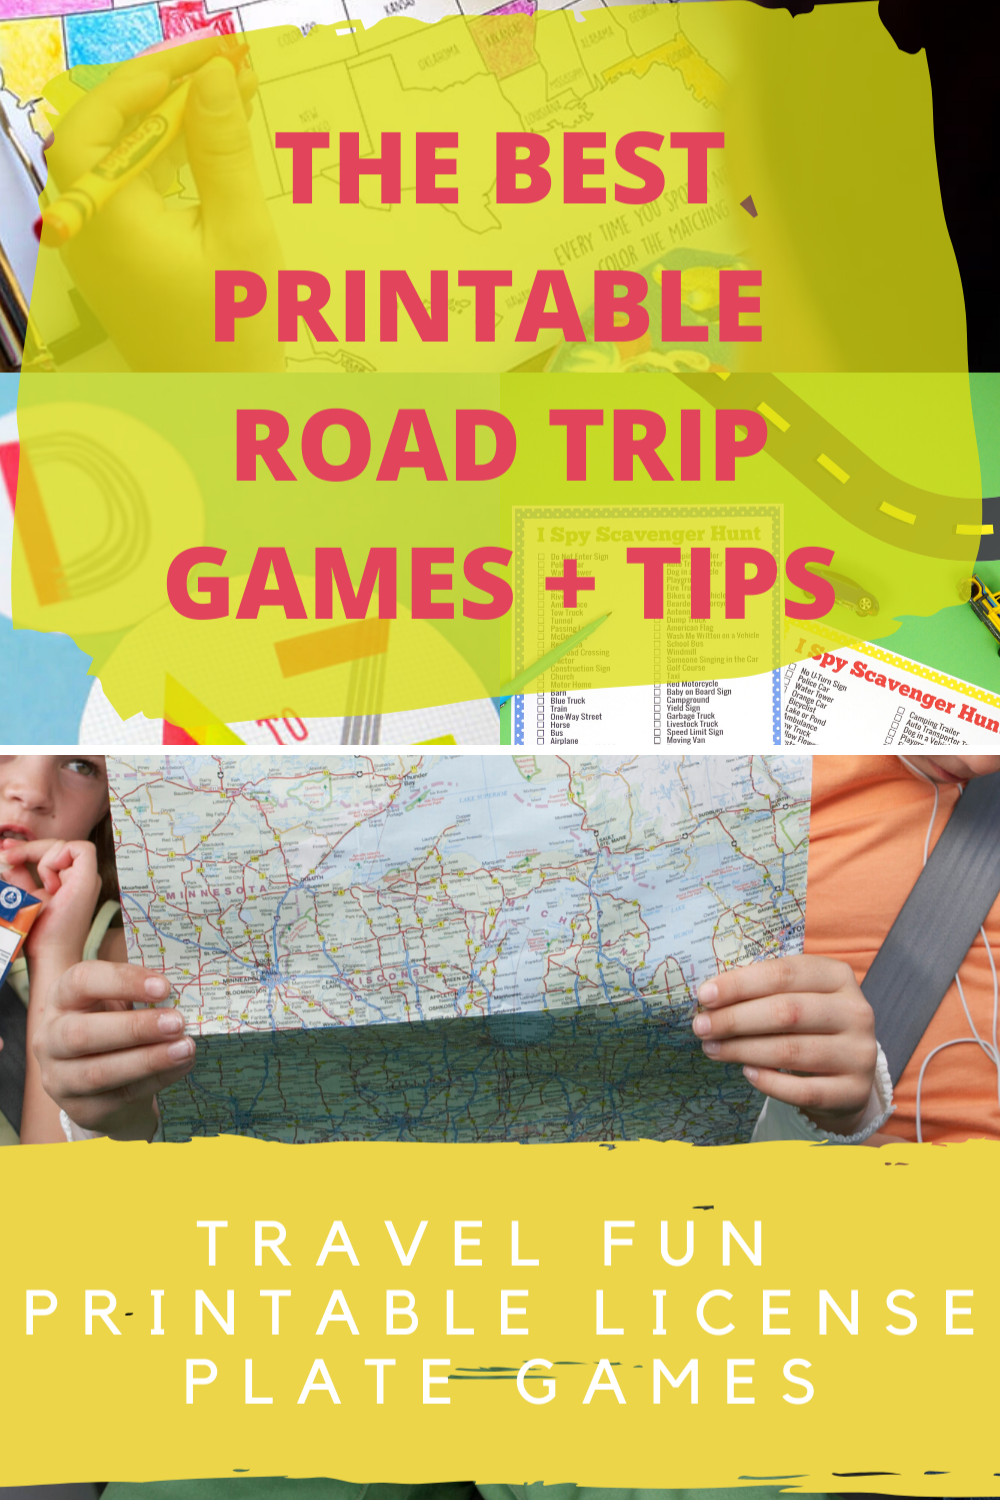 Travel Game Ideas That Are Printable At Home